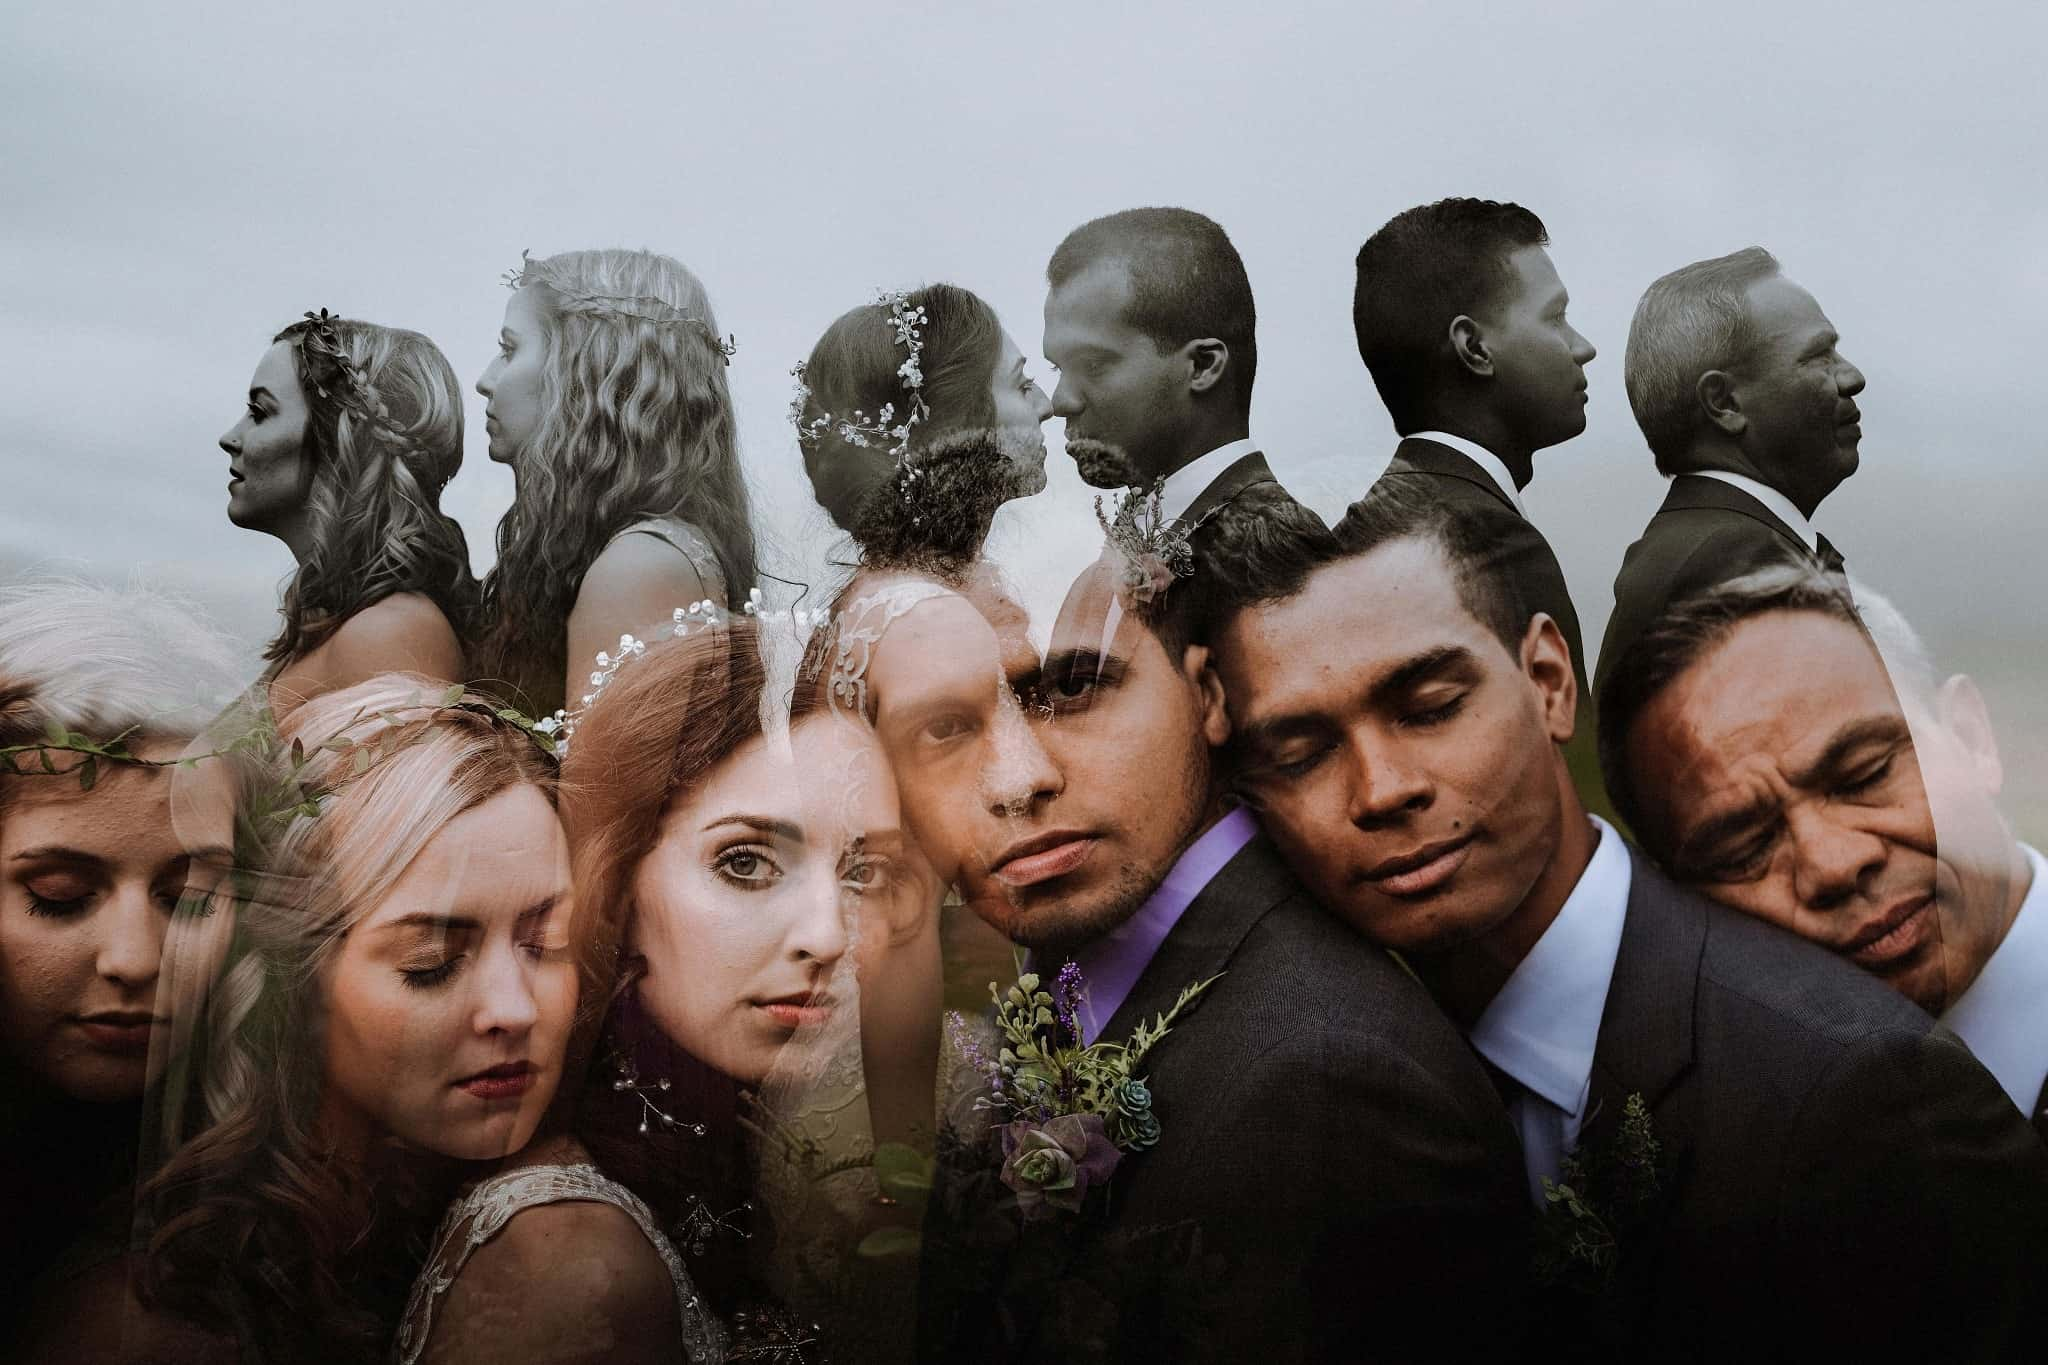 23 Creative Wedding Party Photos That Will Blow You Away